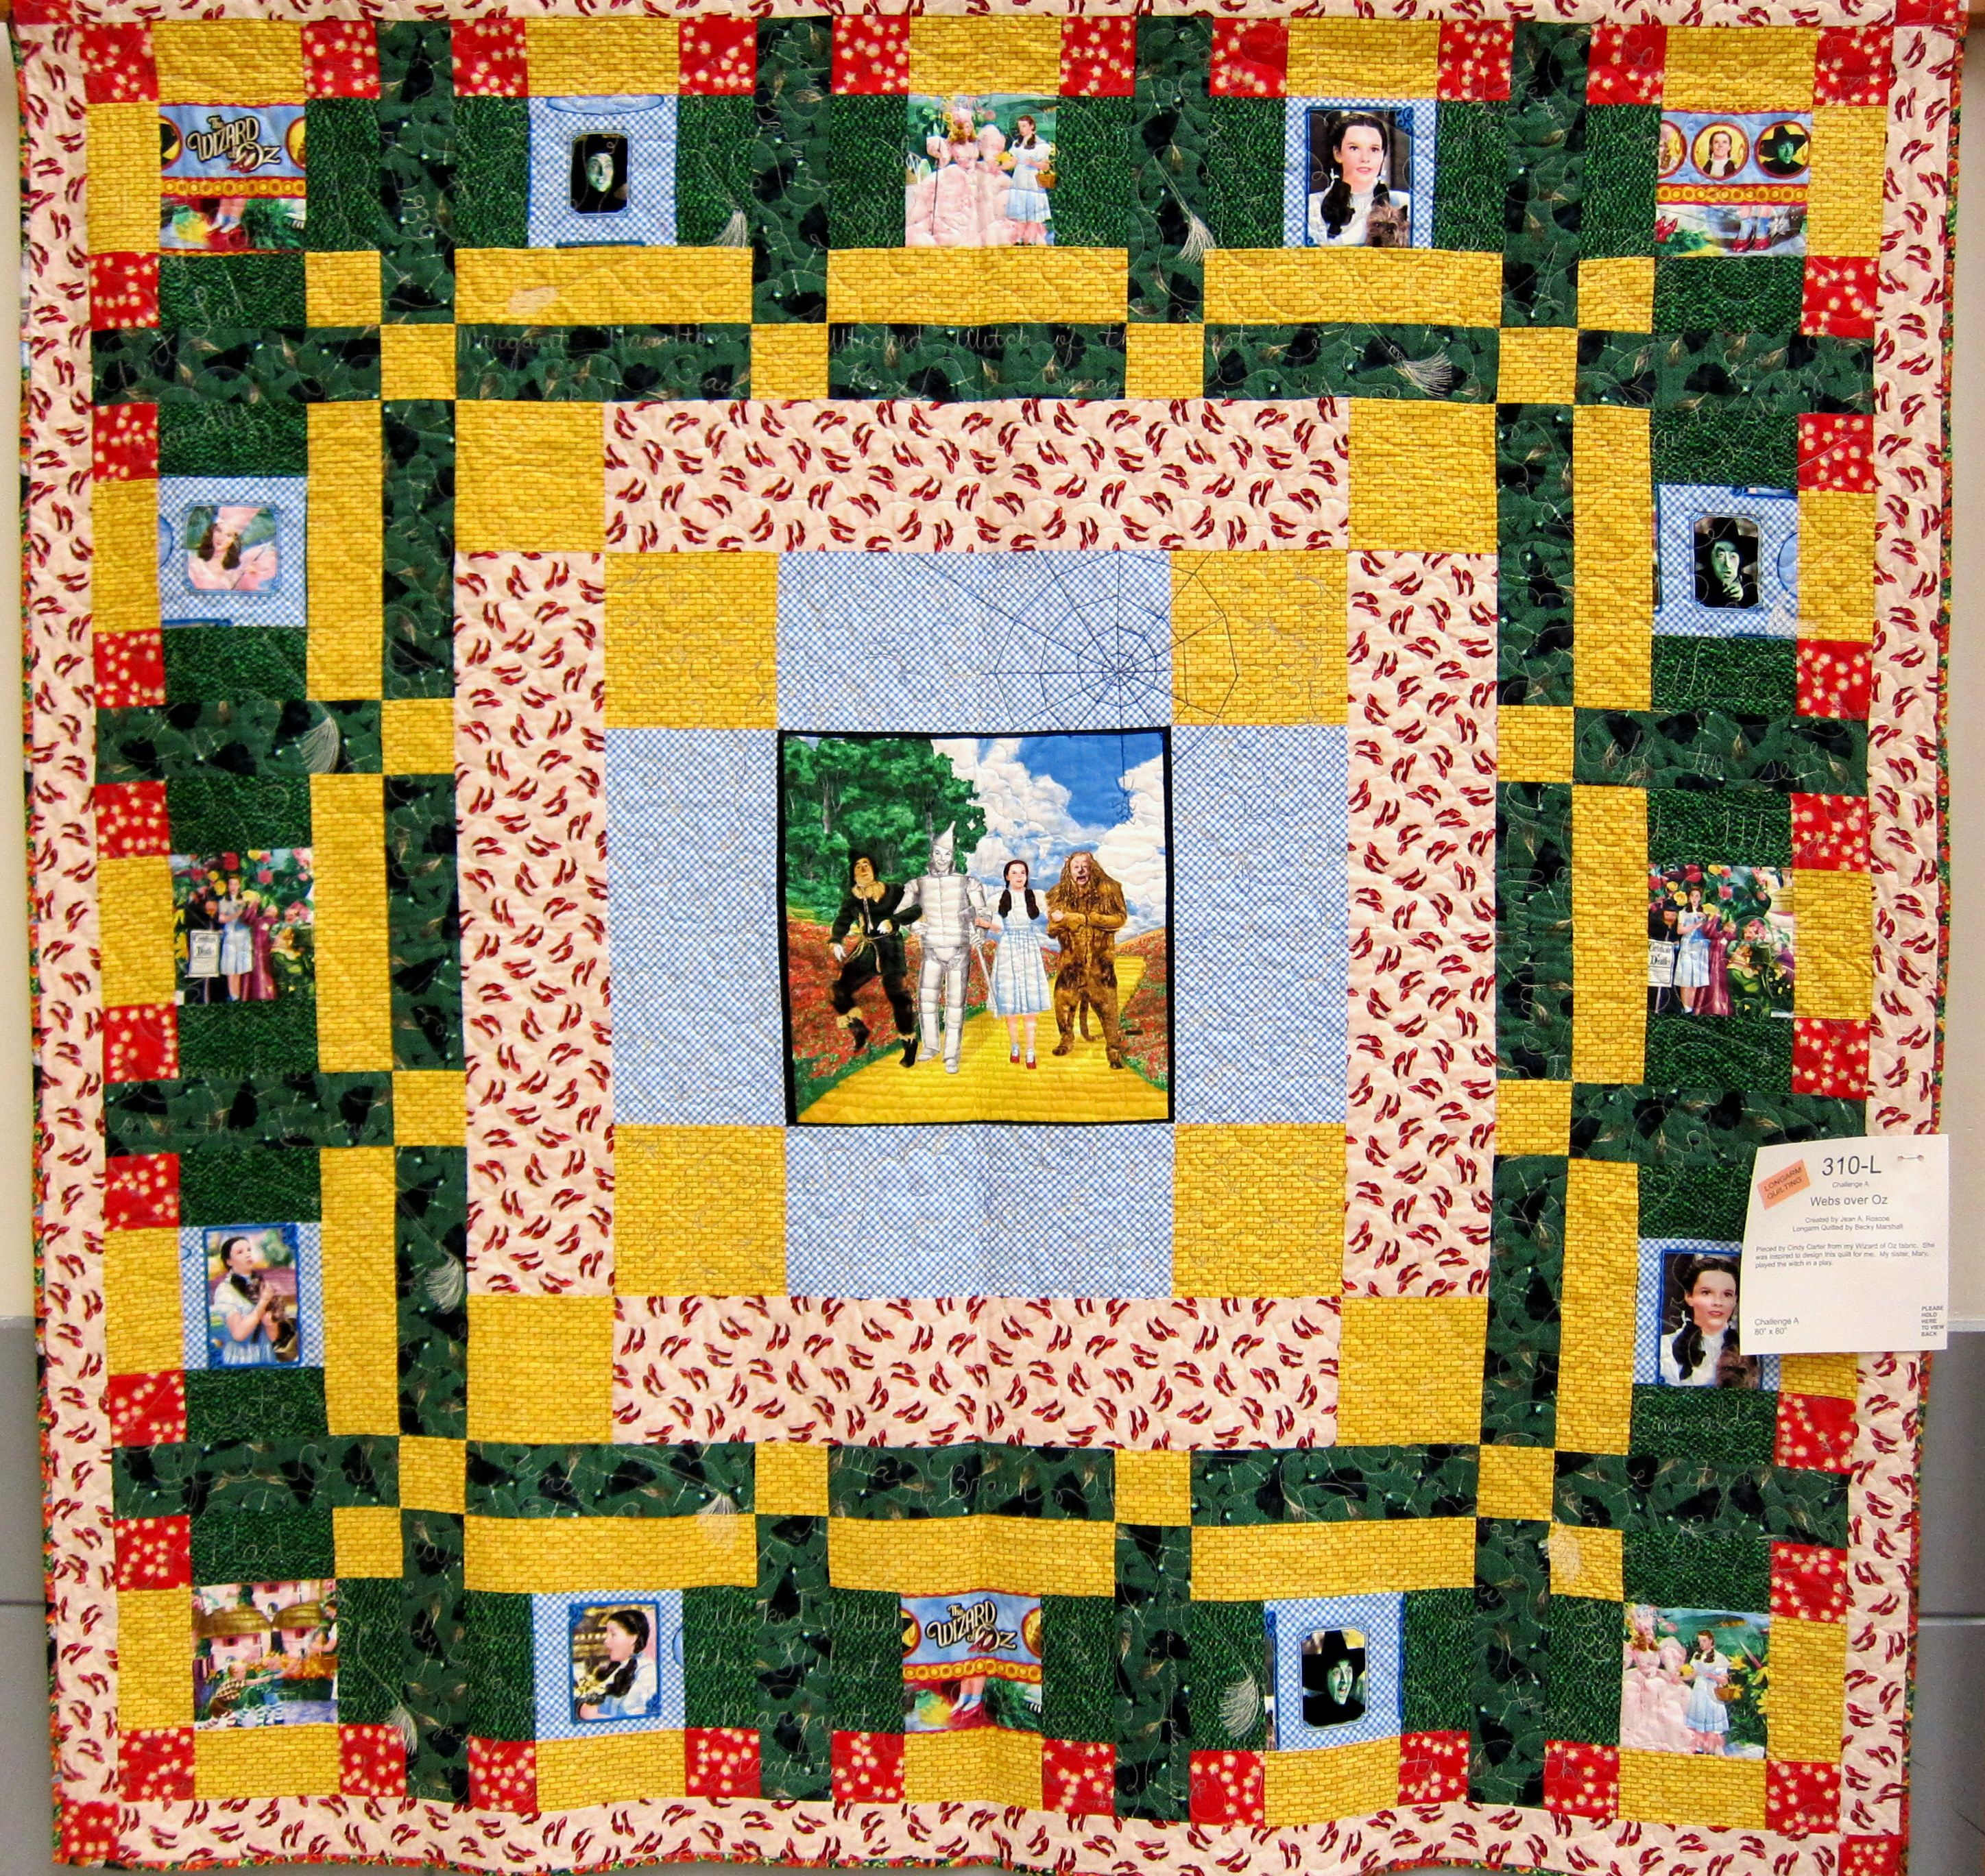 wizard of oz quilt | Quilt Made From Wizard of Oz Fabric ... : yellow brick road quilt pattern pdf - Adamdwight.com